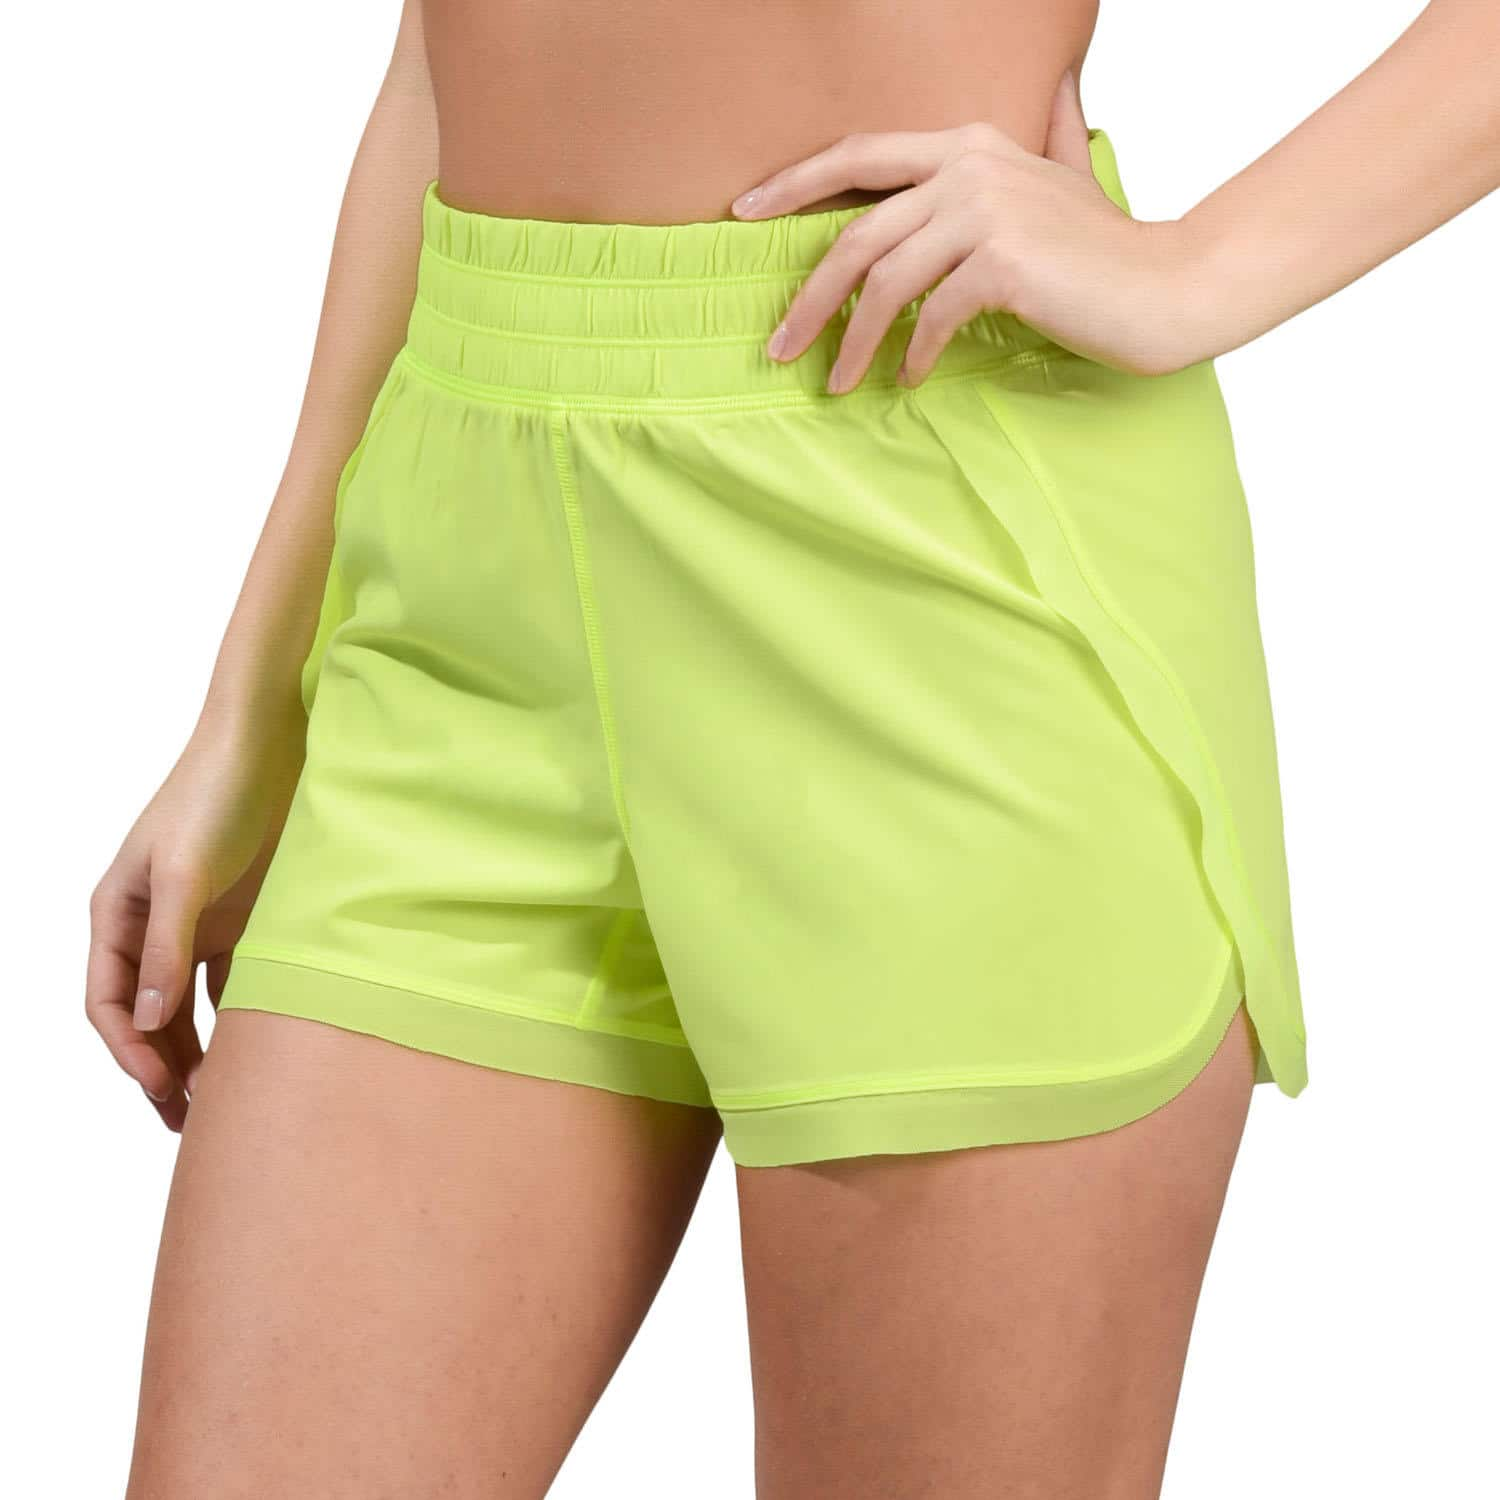 90 Degree by Reflex Woven Shorts with Mesh Contrast $7.97